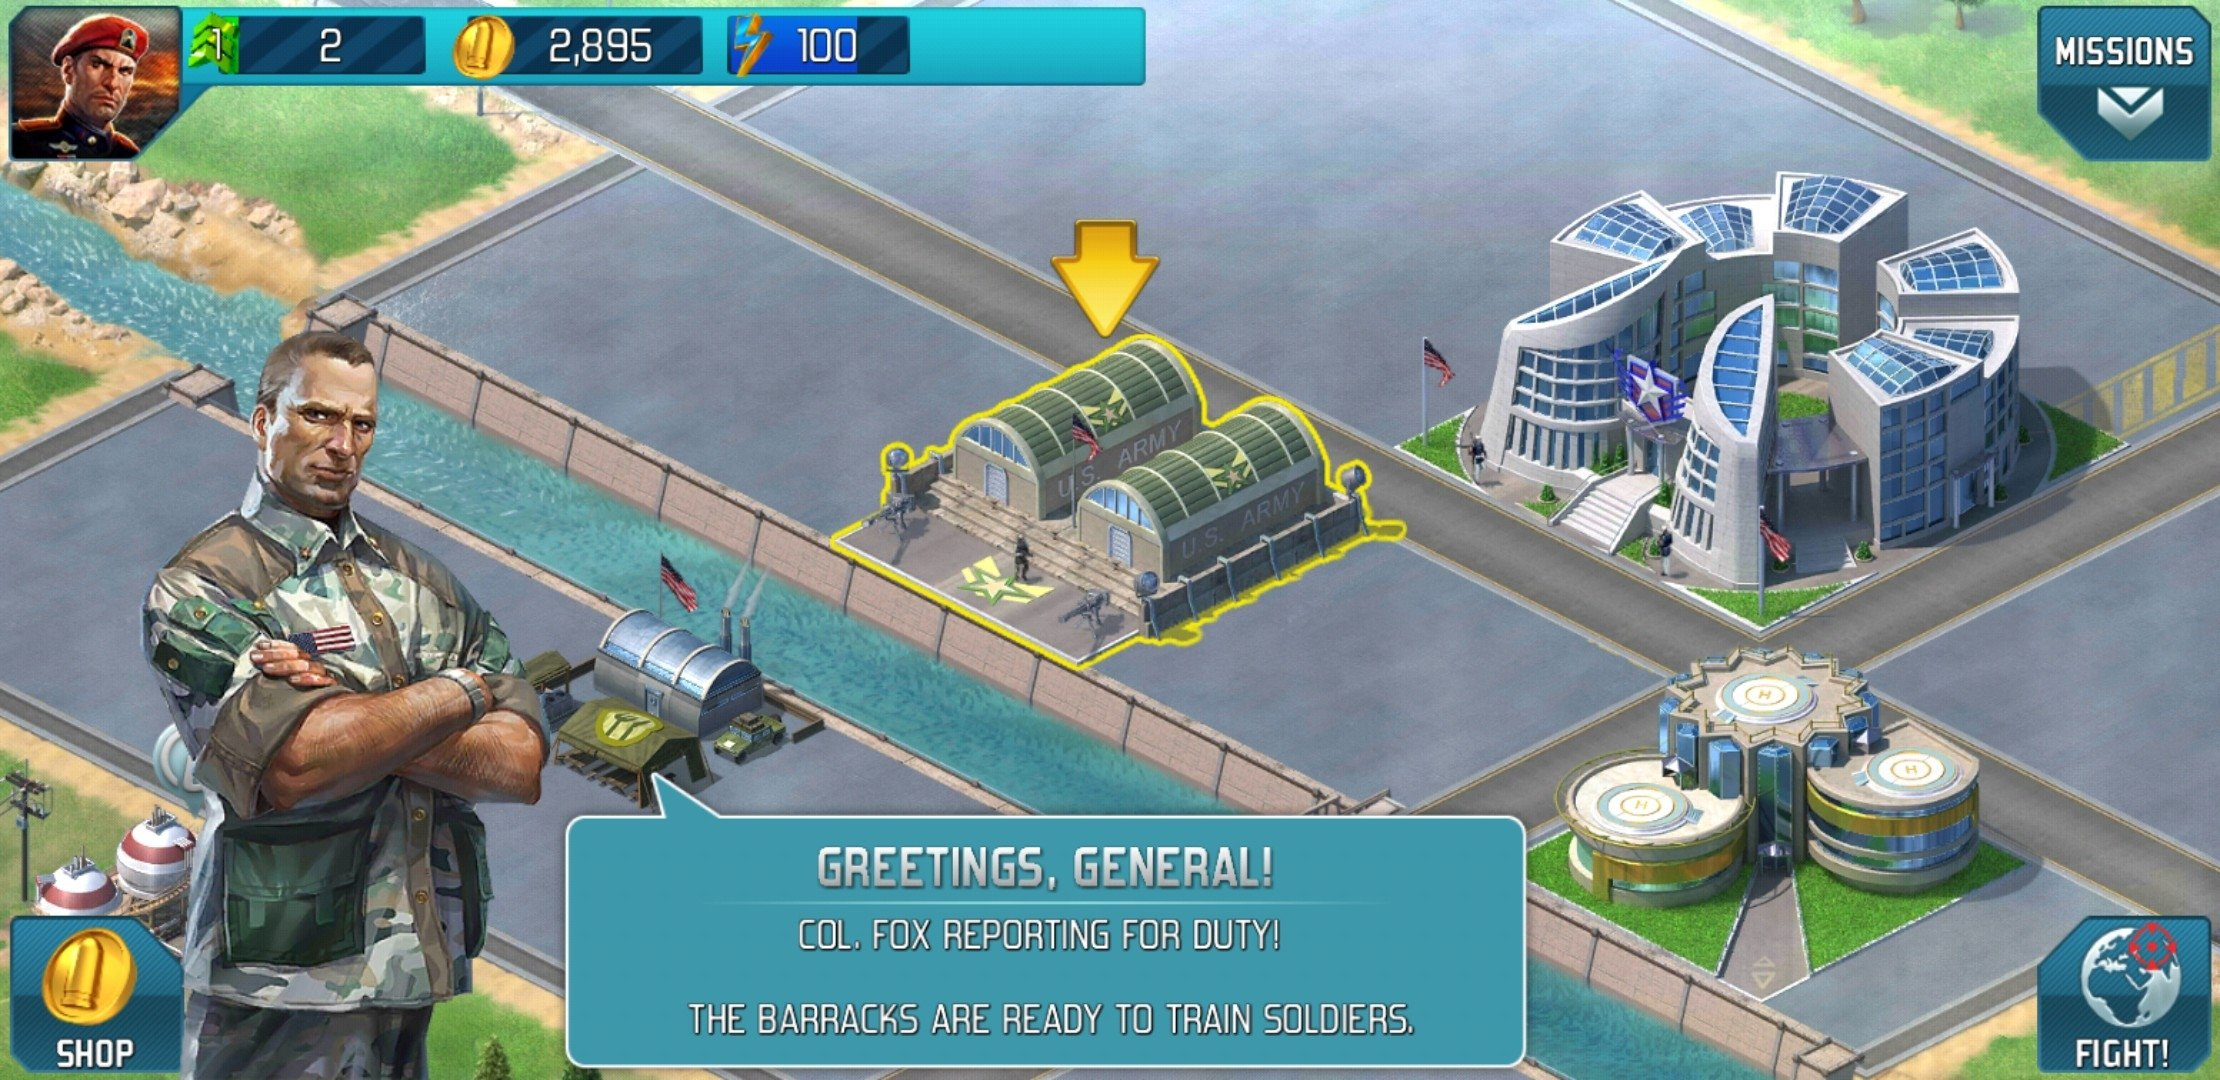 Download world at arms android app for pc / world at arms on pc.